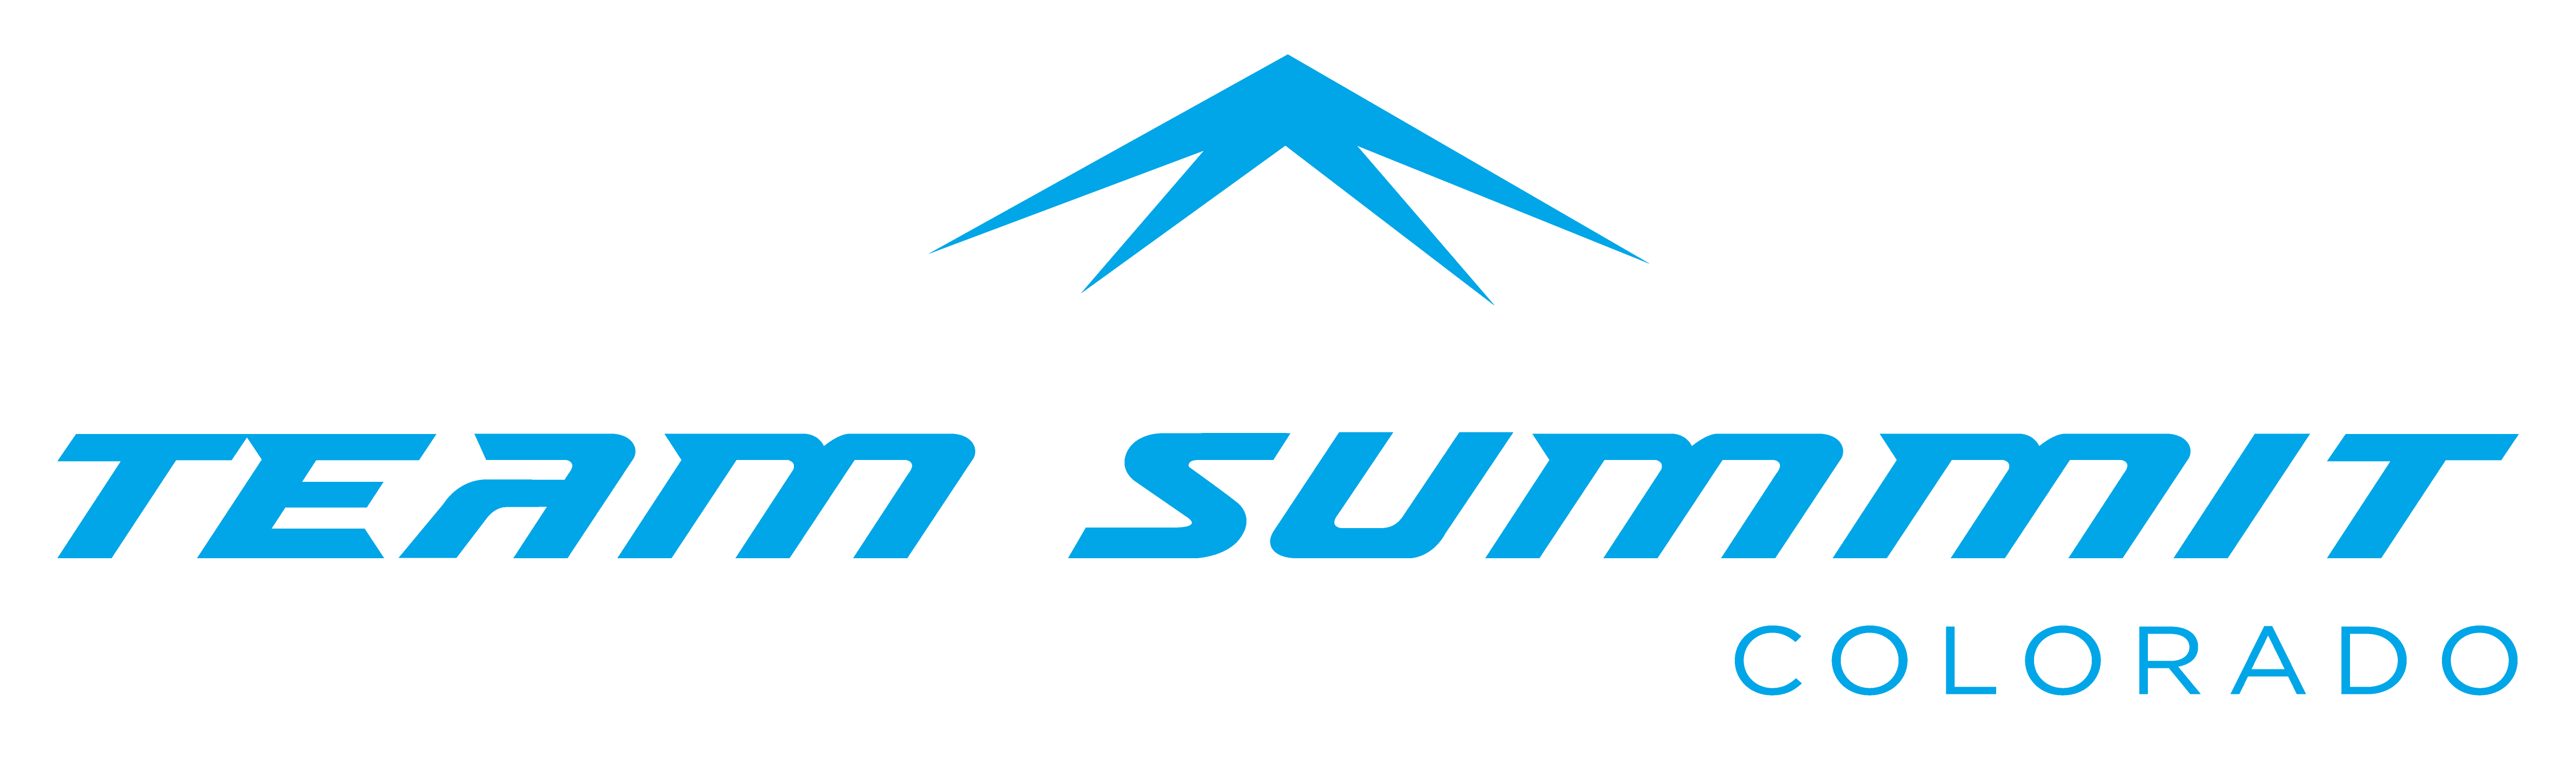 TEAMSUMMIT LOGO_blue-03.png